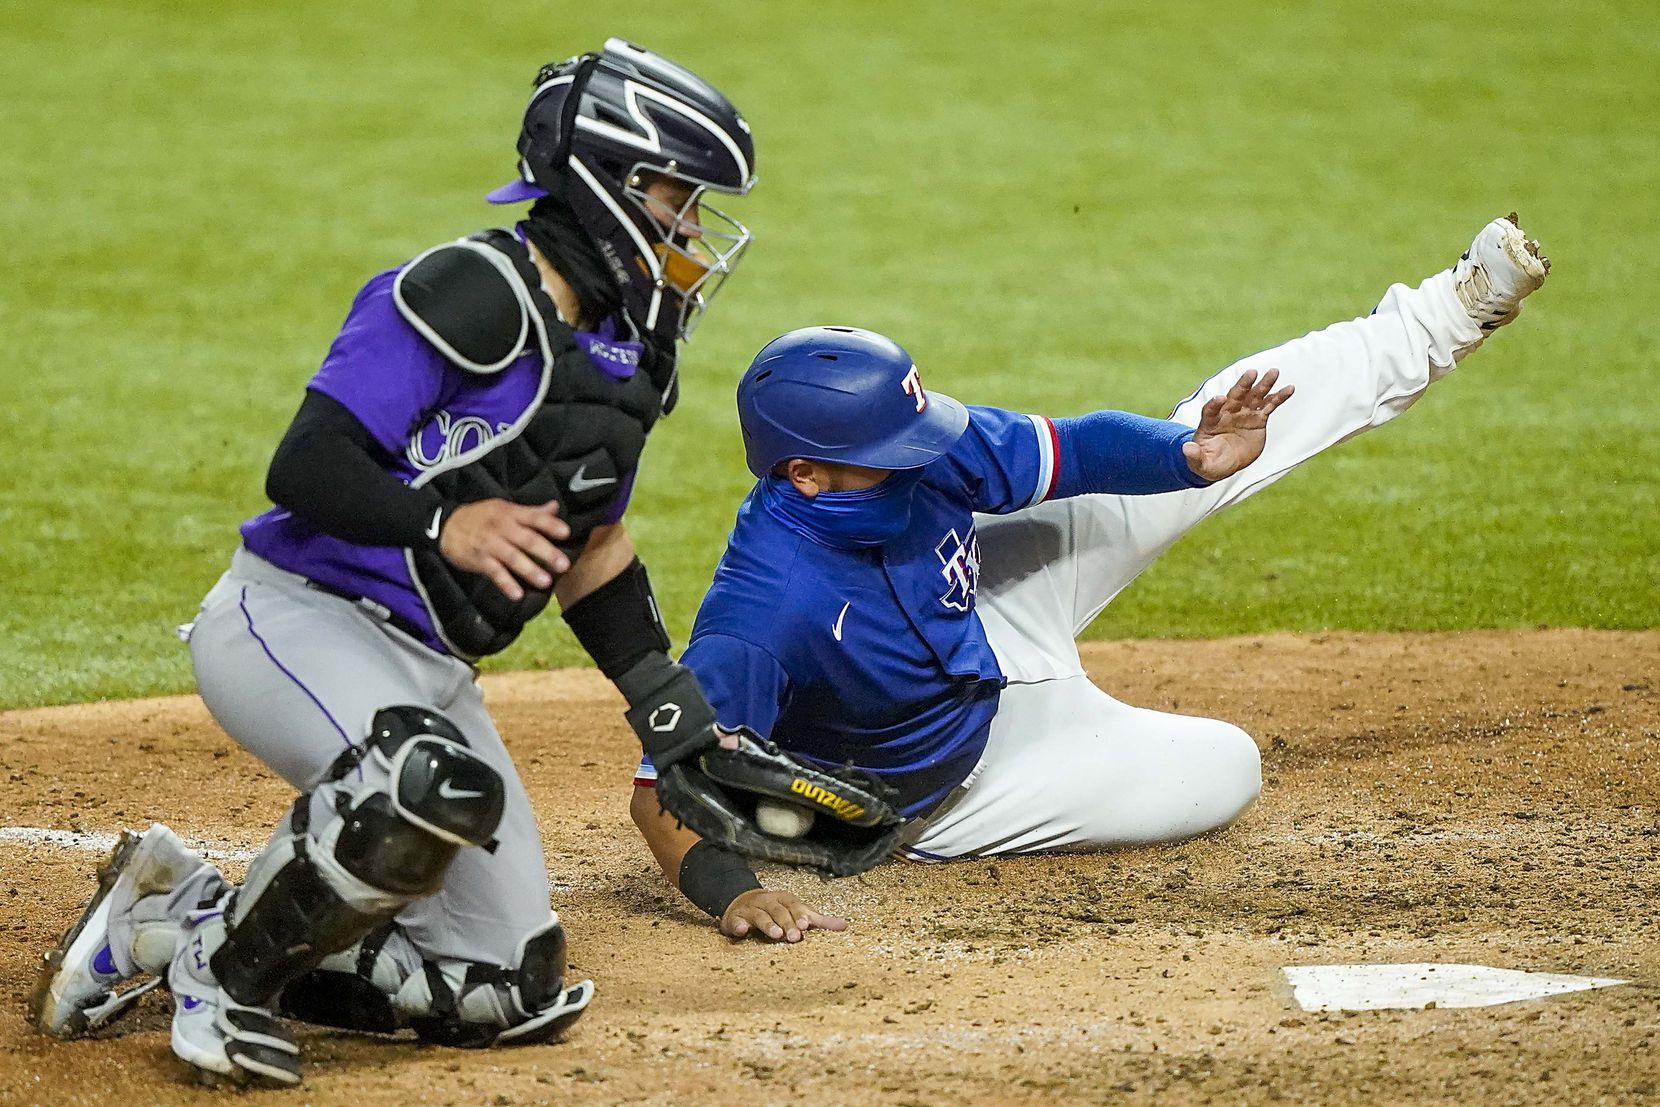 Texas Rangers catcher Jose Trevino is thrown out at home trying to score on a double by outfielder Nick Solak as Colorado Rockies catcher Tony Wolters makes the tag on a throw by center fielder David Dahl during the sixth inning of an exhibition game at Globe Life Field on Tuesday, July 21, 2020.